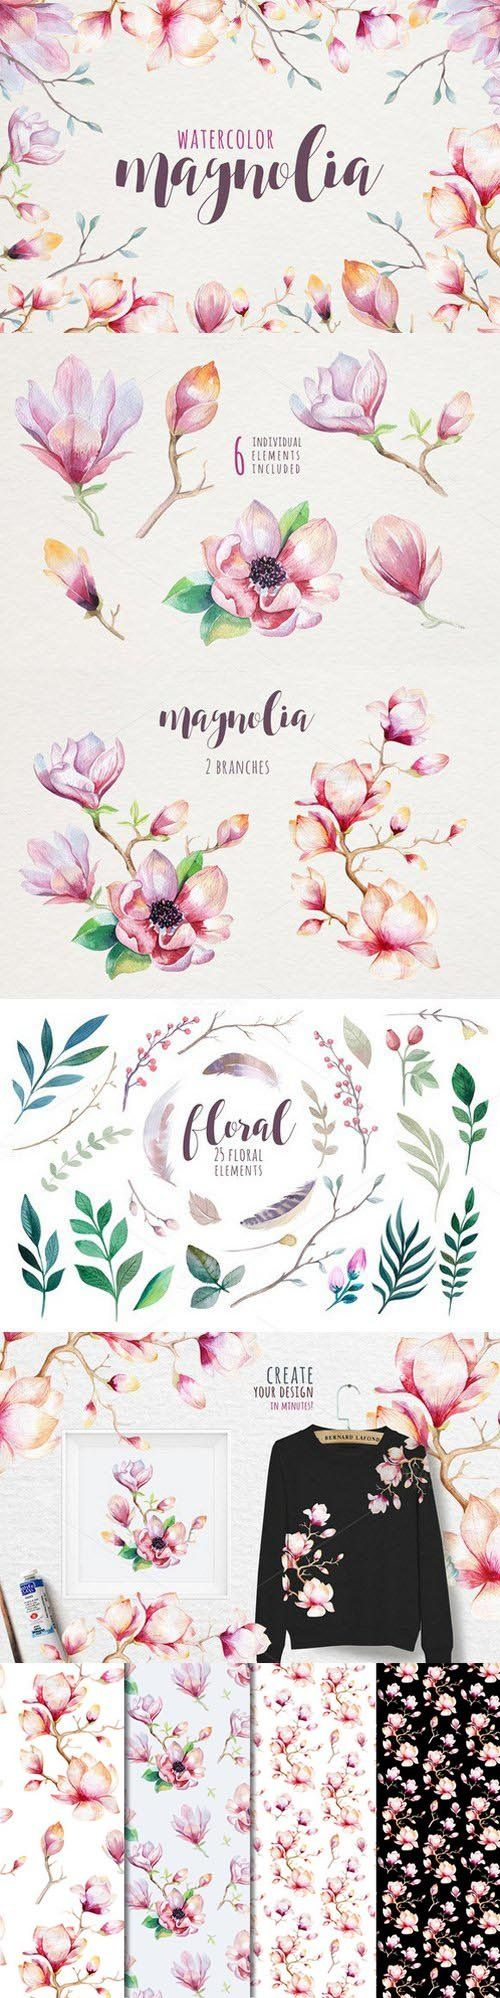 Watercolor magnolia 652998                                                                                                                                                                                 More